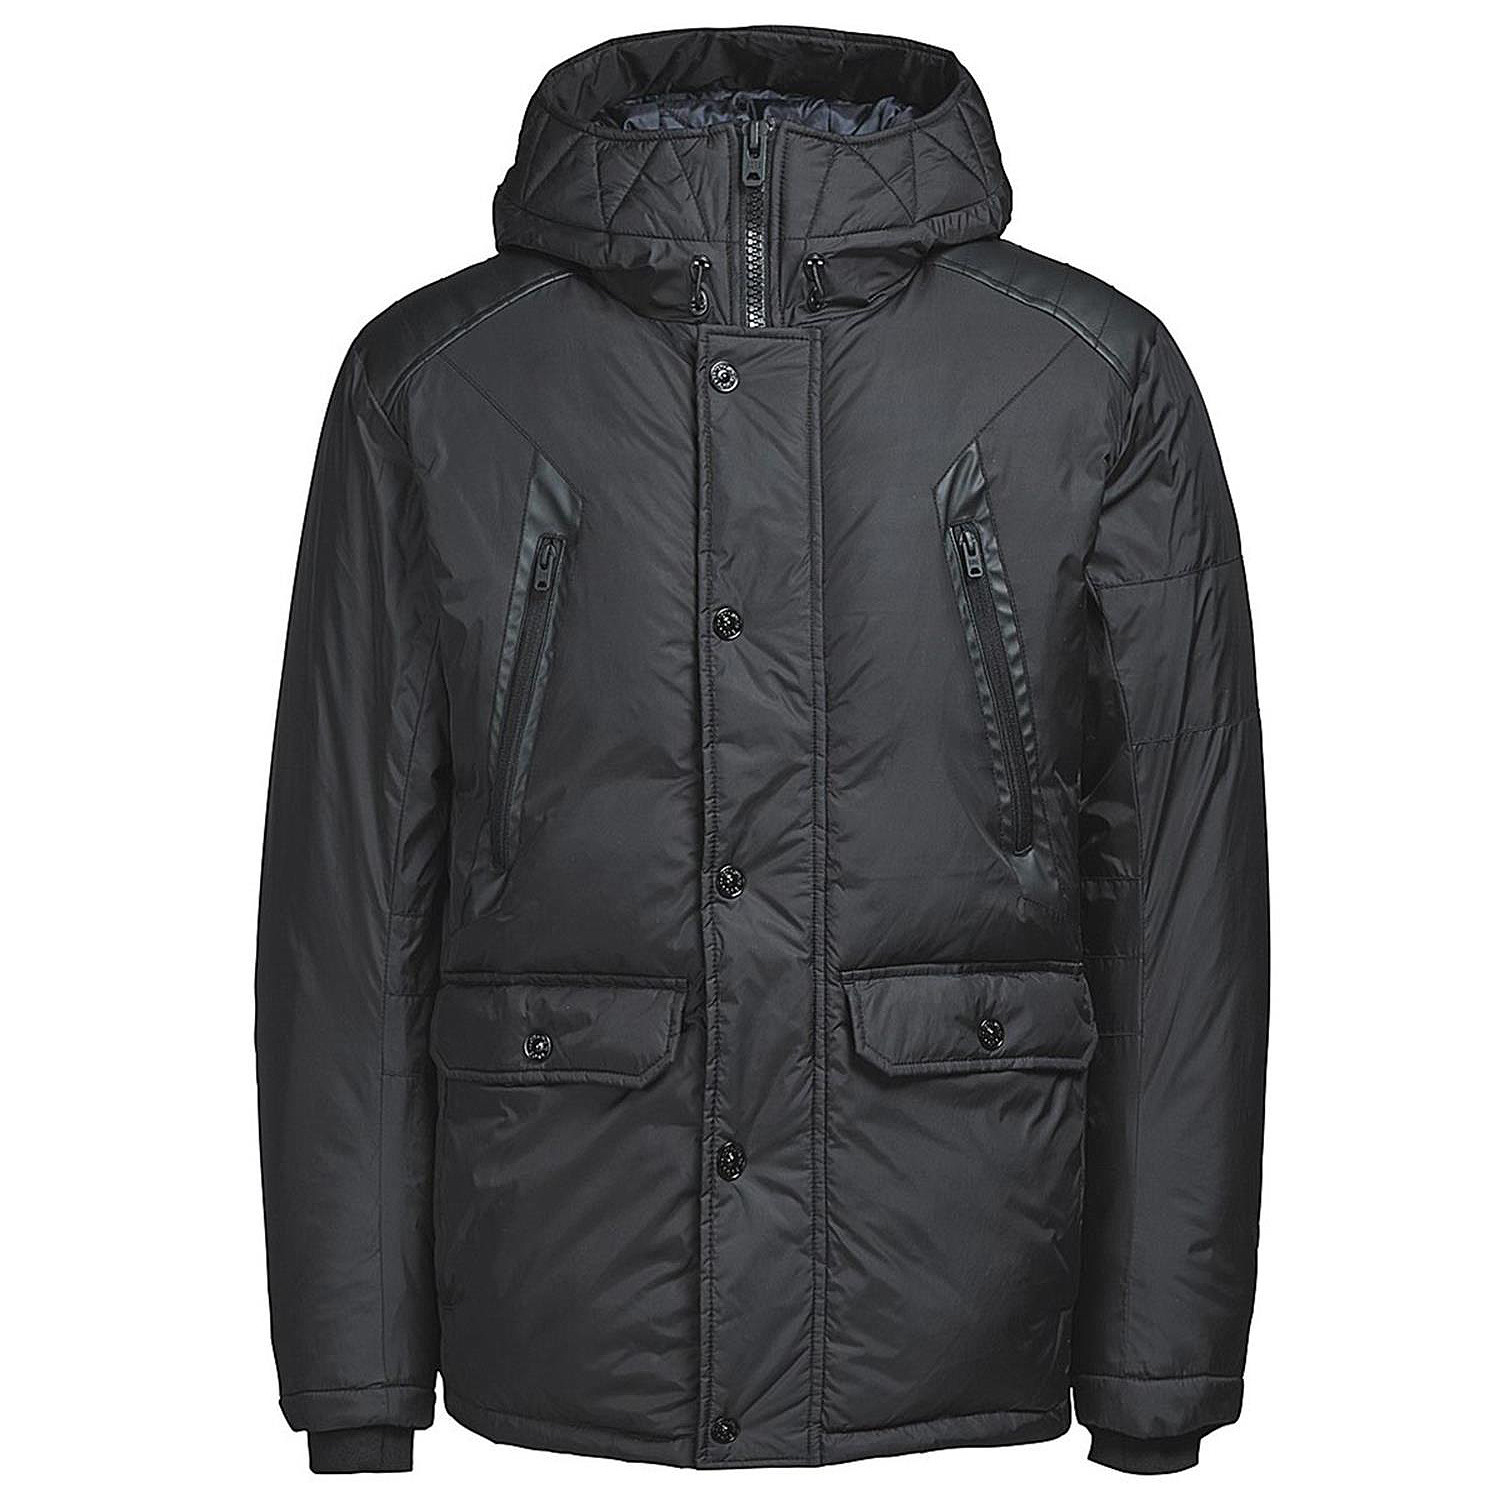 graf parka homme jack and jones noir pas cher parkas homme jack and jones discount. Black Bedroom Furniture Sets. Home Design Ideas